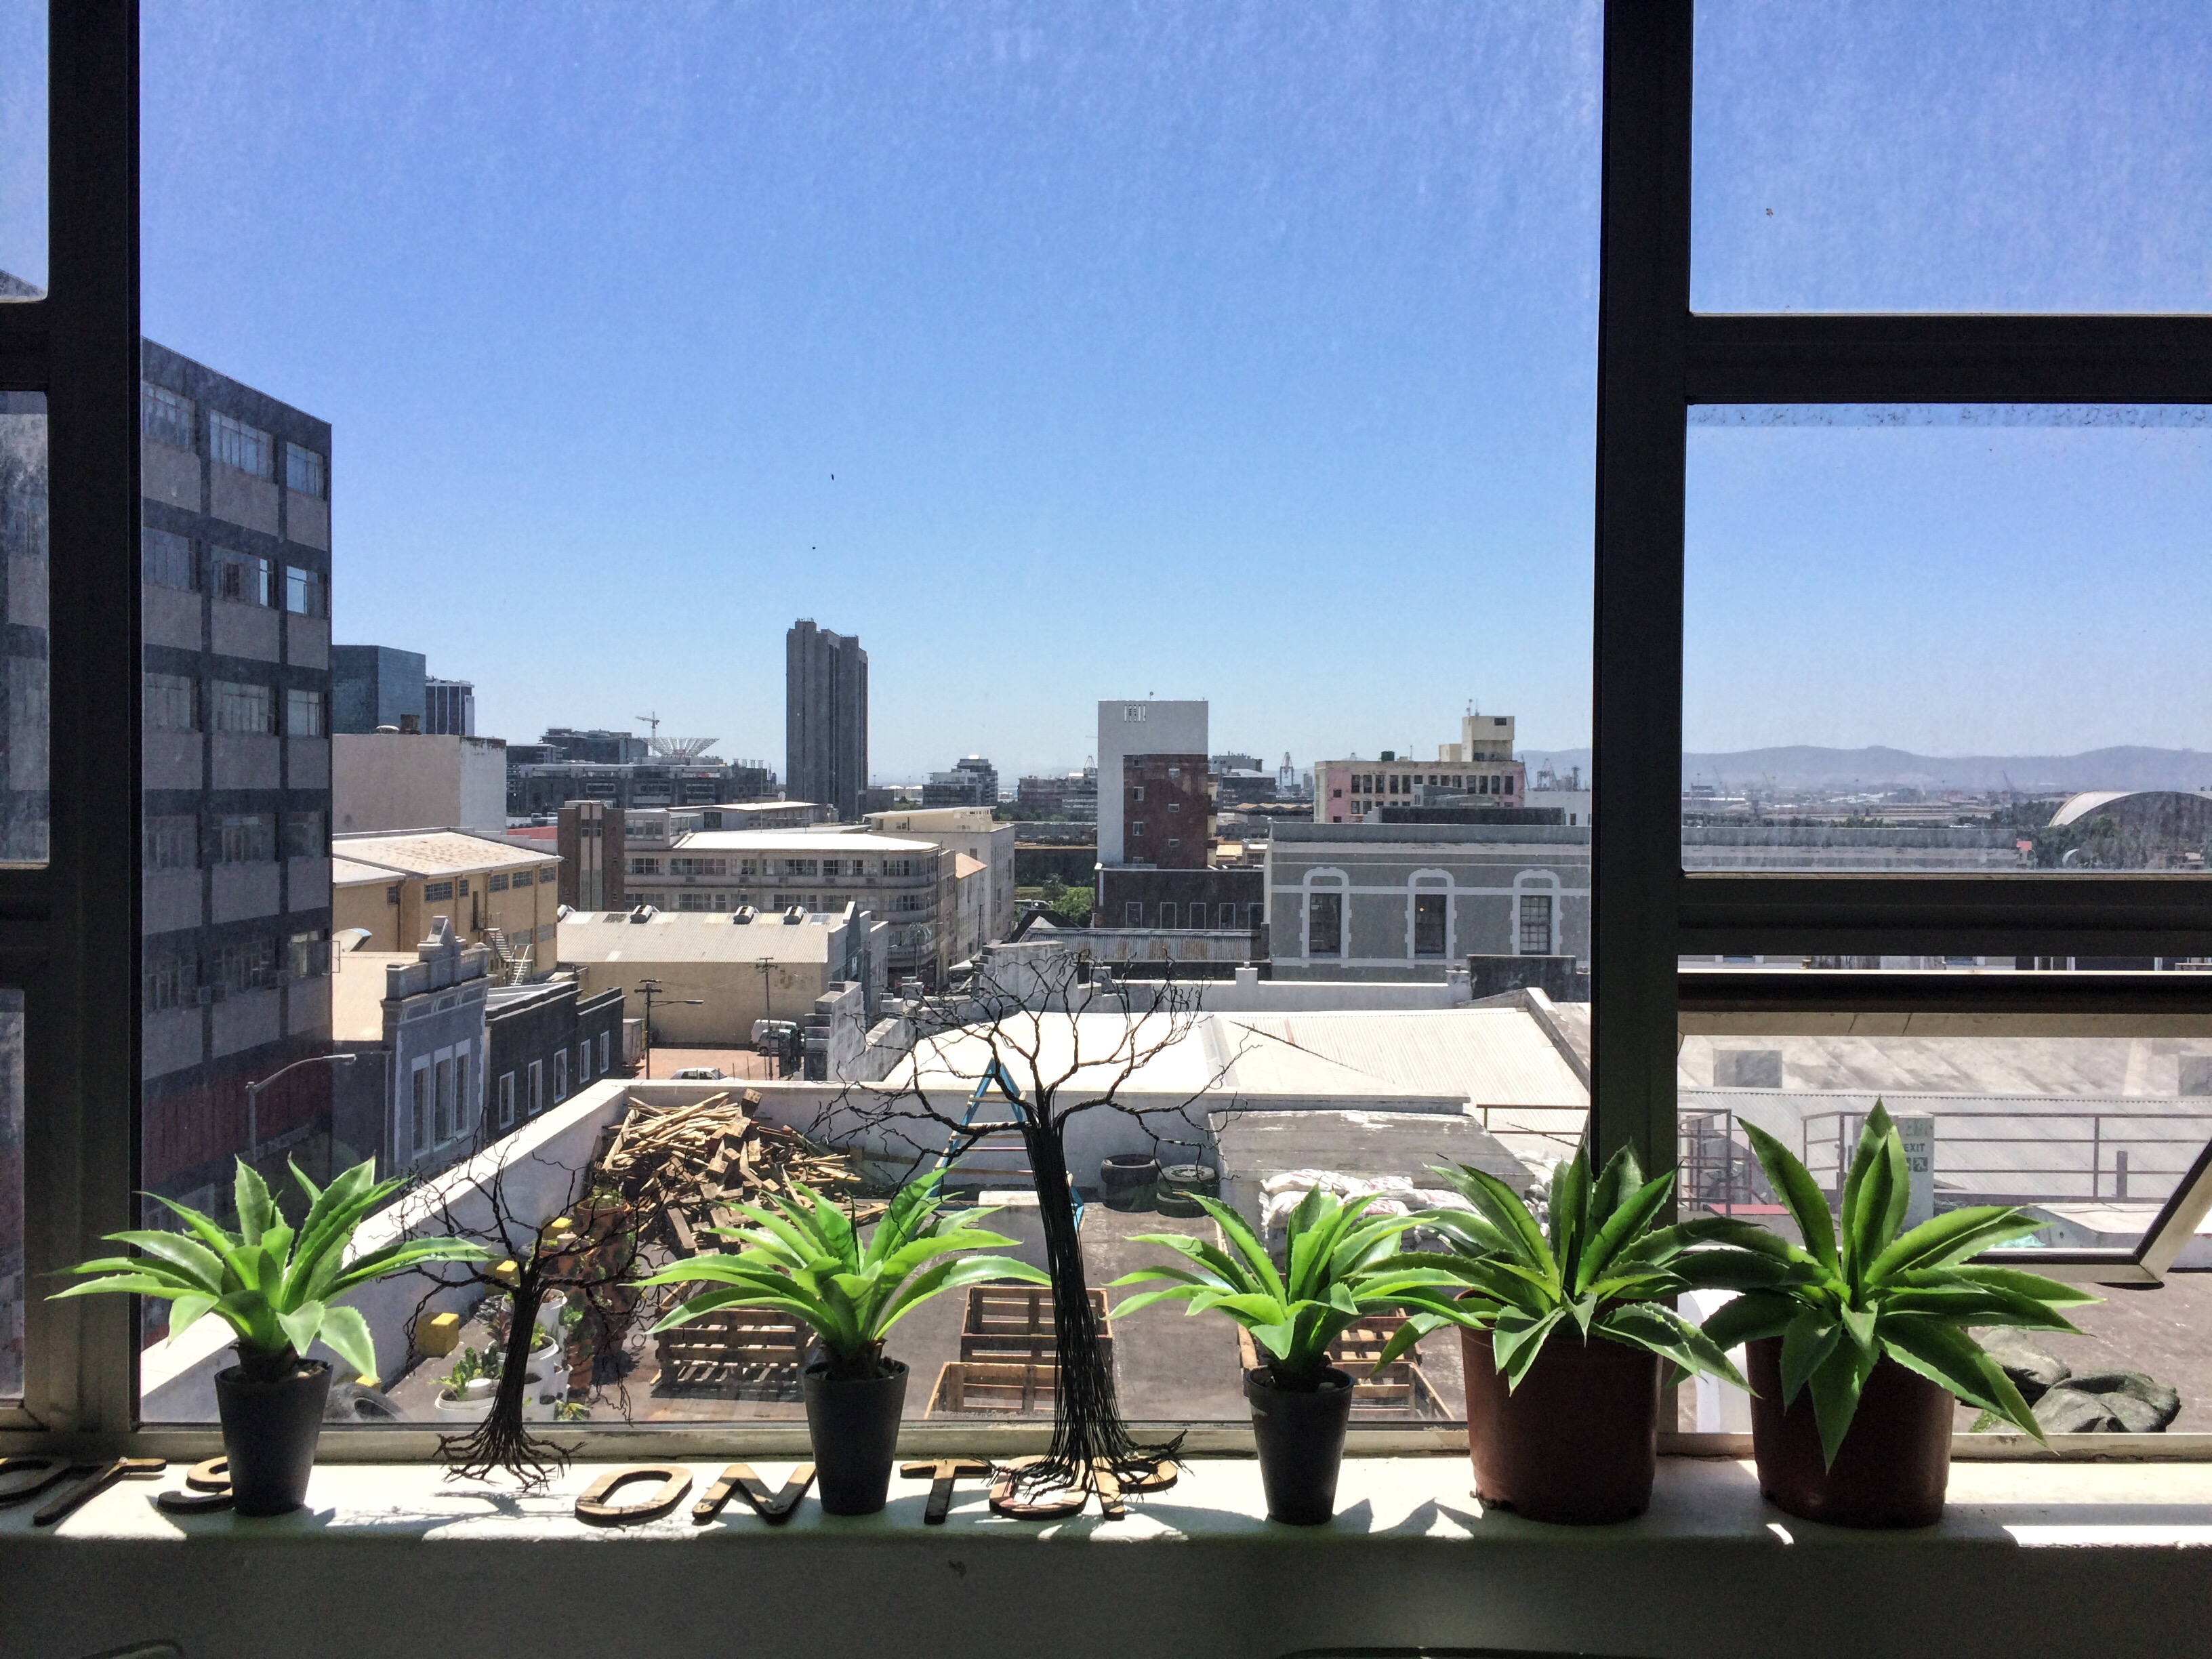 Plants soaking up the sun - 75 Harrington Street, Cape Town